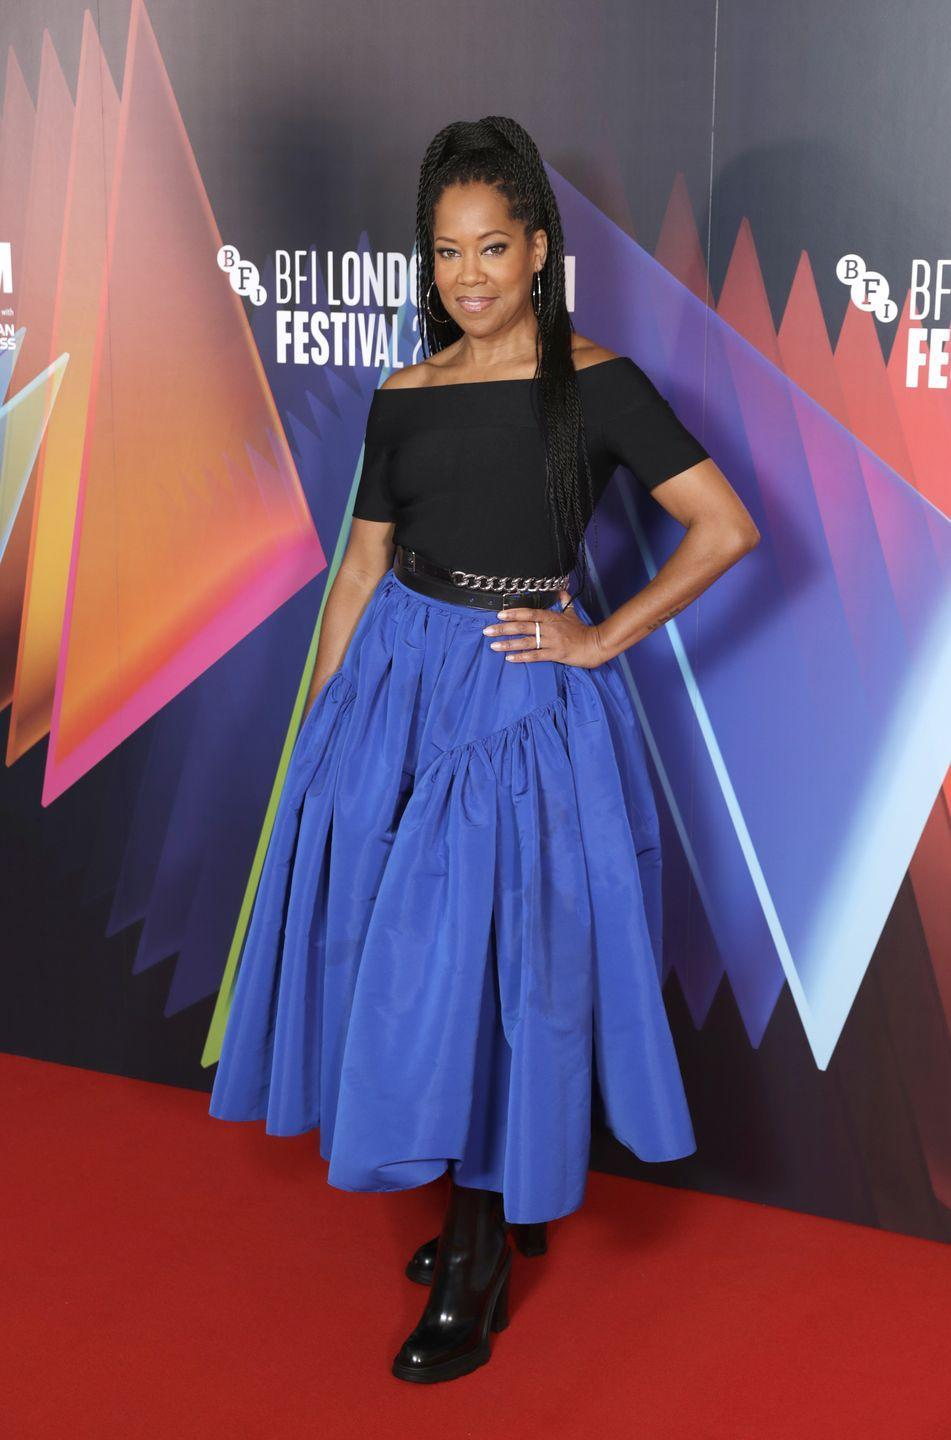 <p>Earlier that day, Regina King attended a press conference for The Harder They Fall in a blue flared skirt and off the shoulder top by Alexander McQueen. </p>